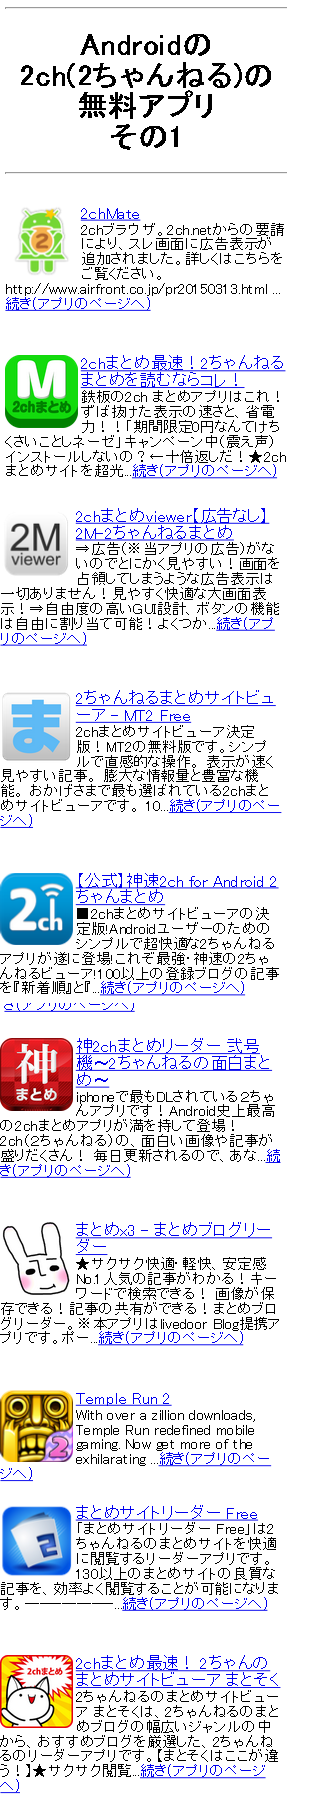 android_2ch_01.png